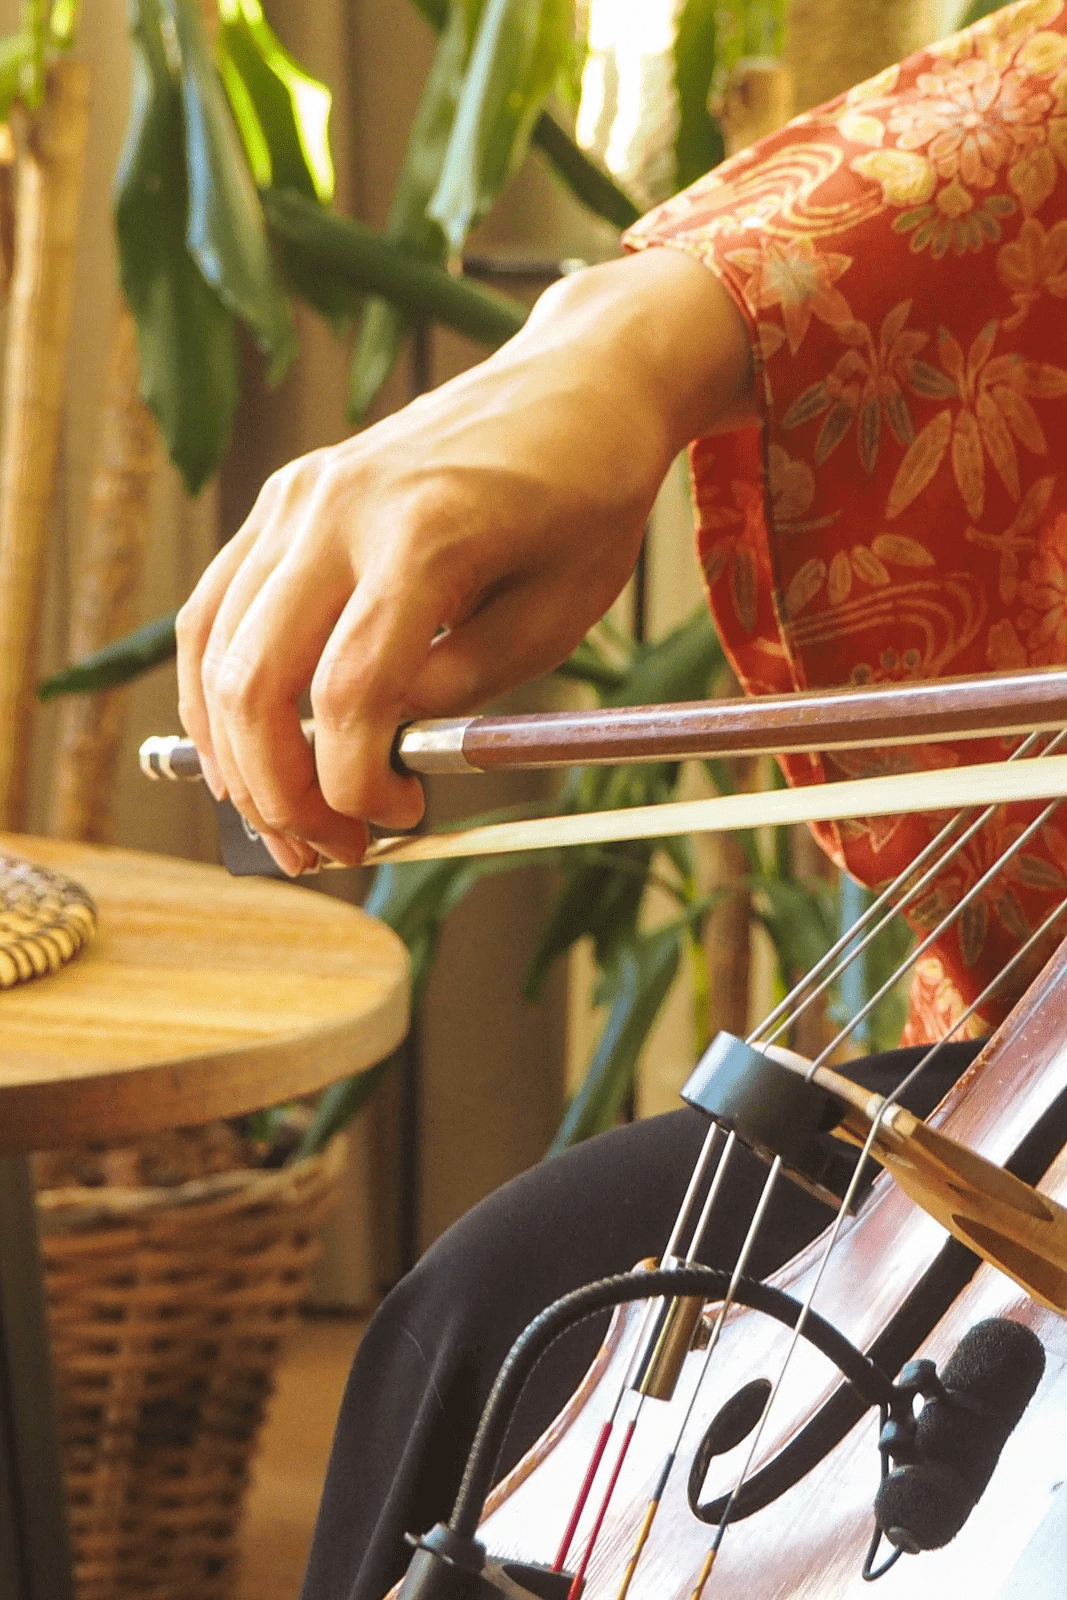 cello meditation cultural concert online cultural experience